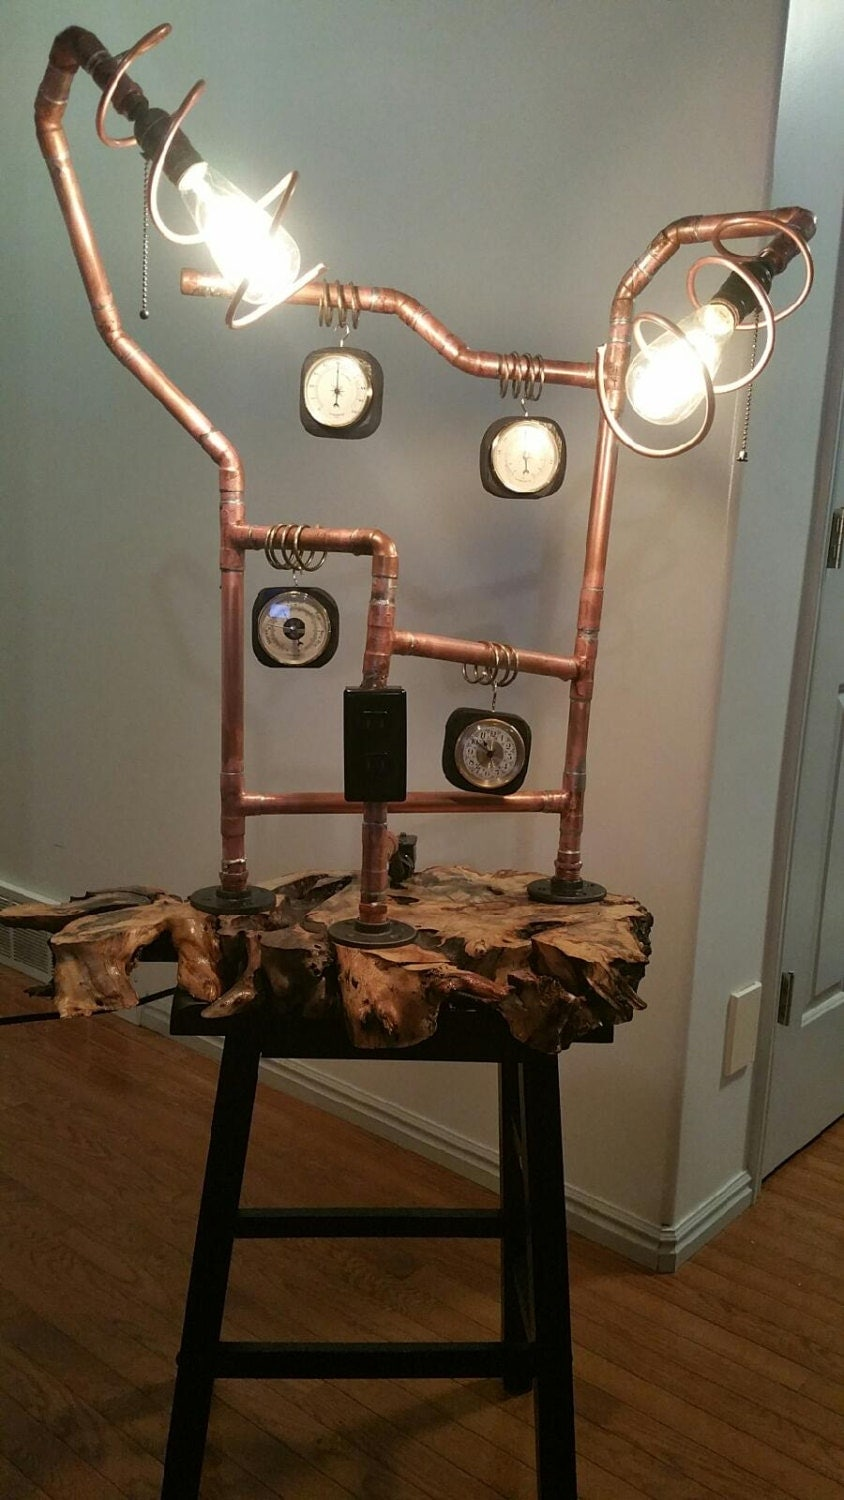 Copper pipe lamp with clock and thermometer